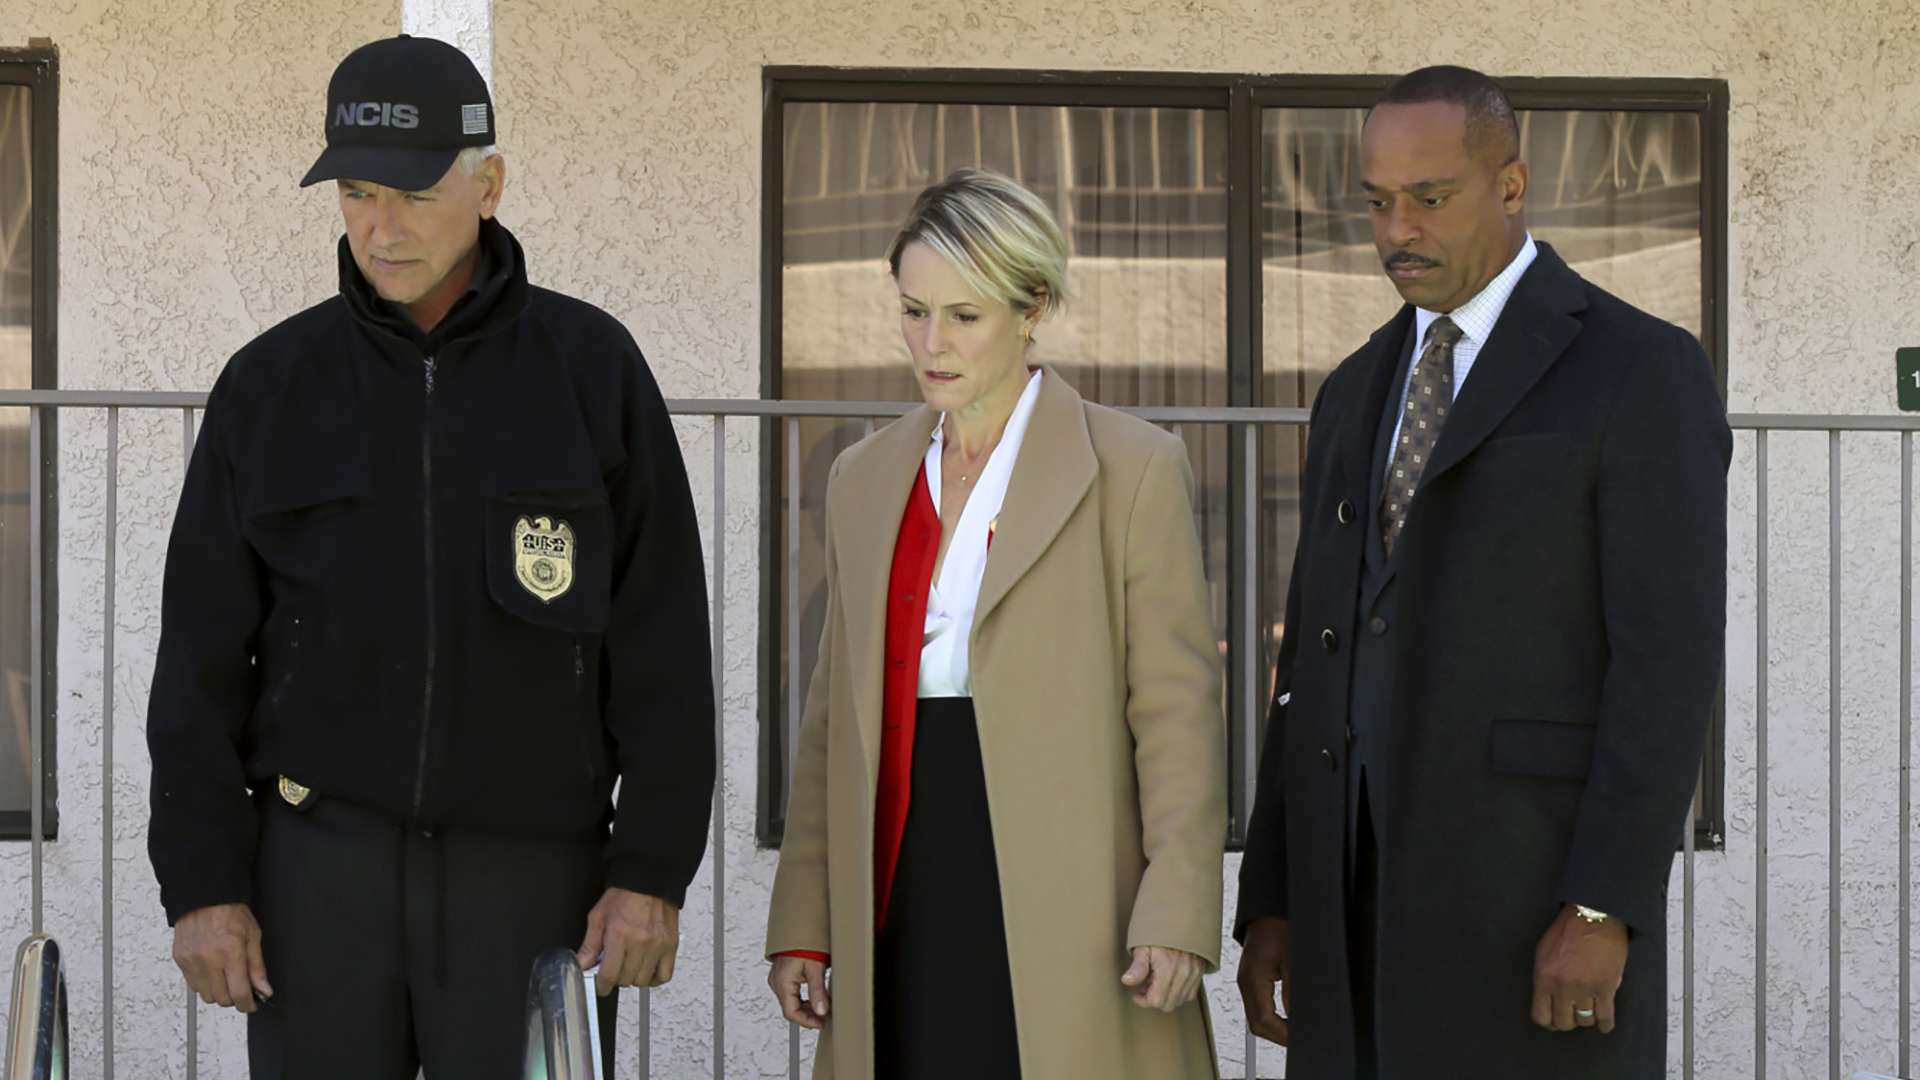 Gibbs, the Congresswoman, and Vance take in the crime scene.